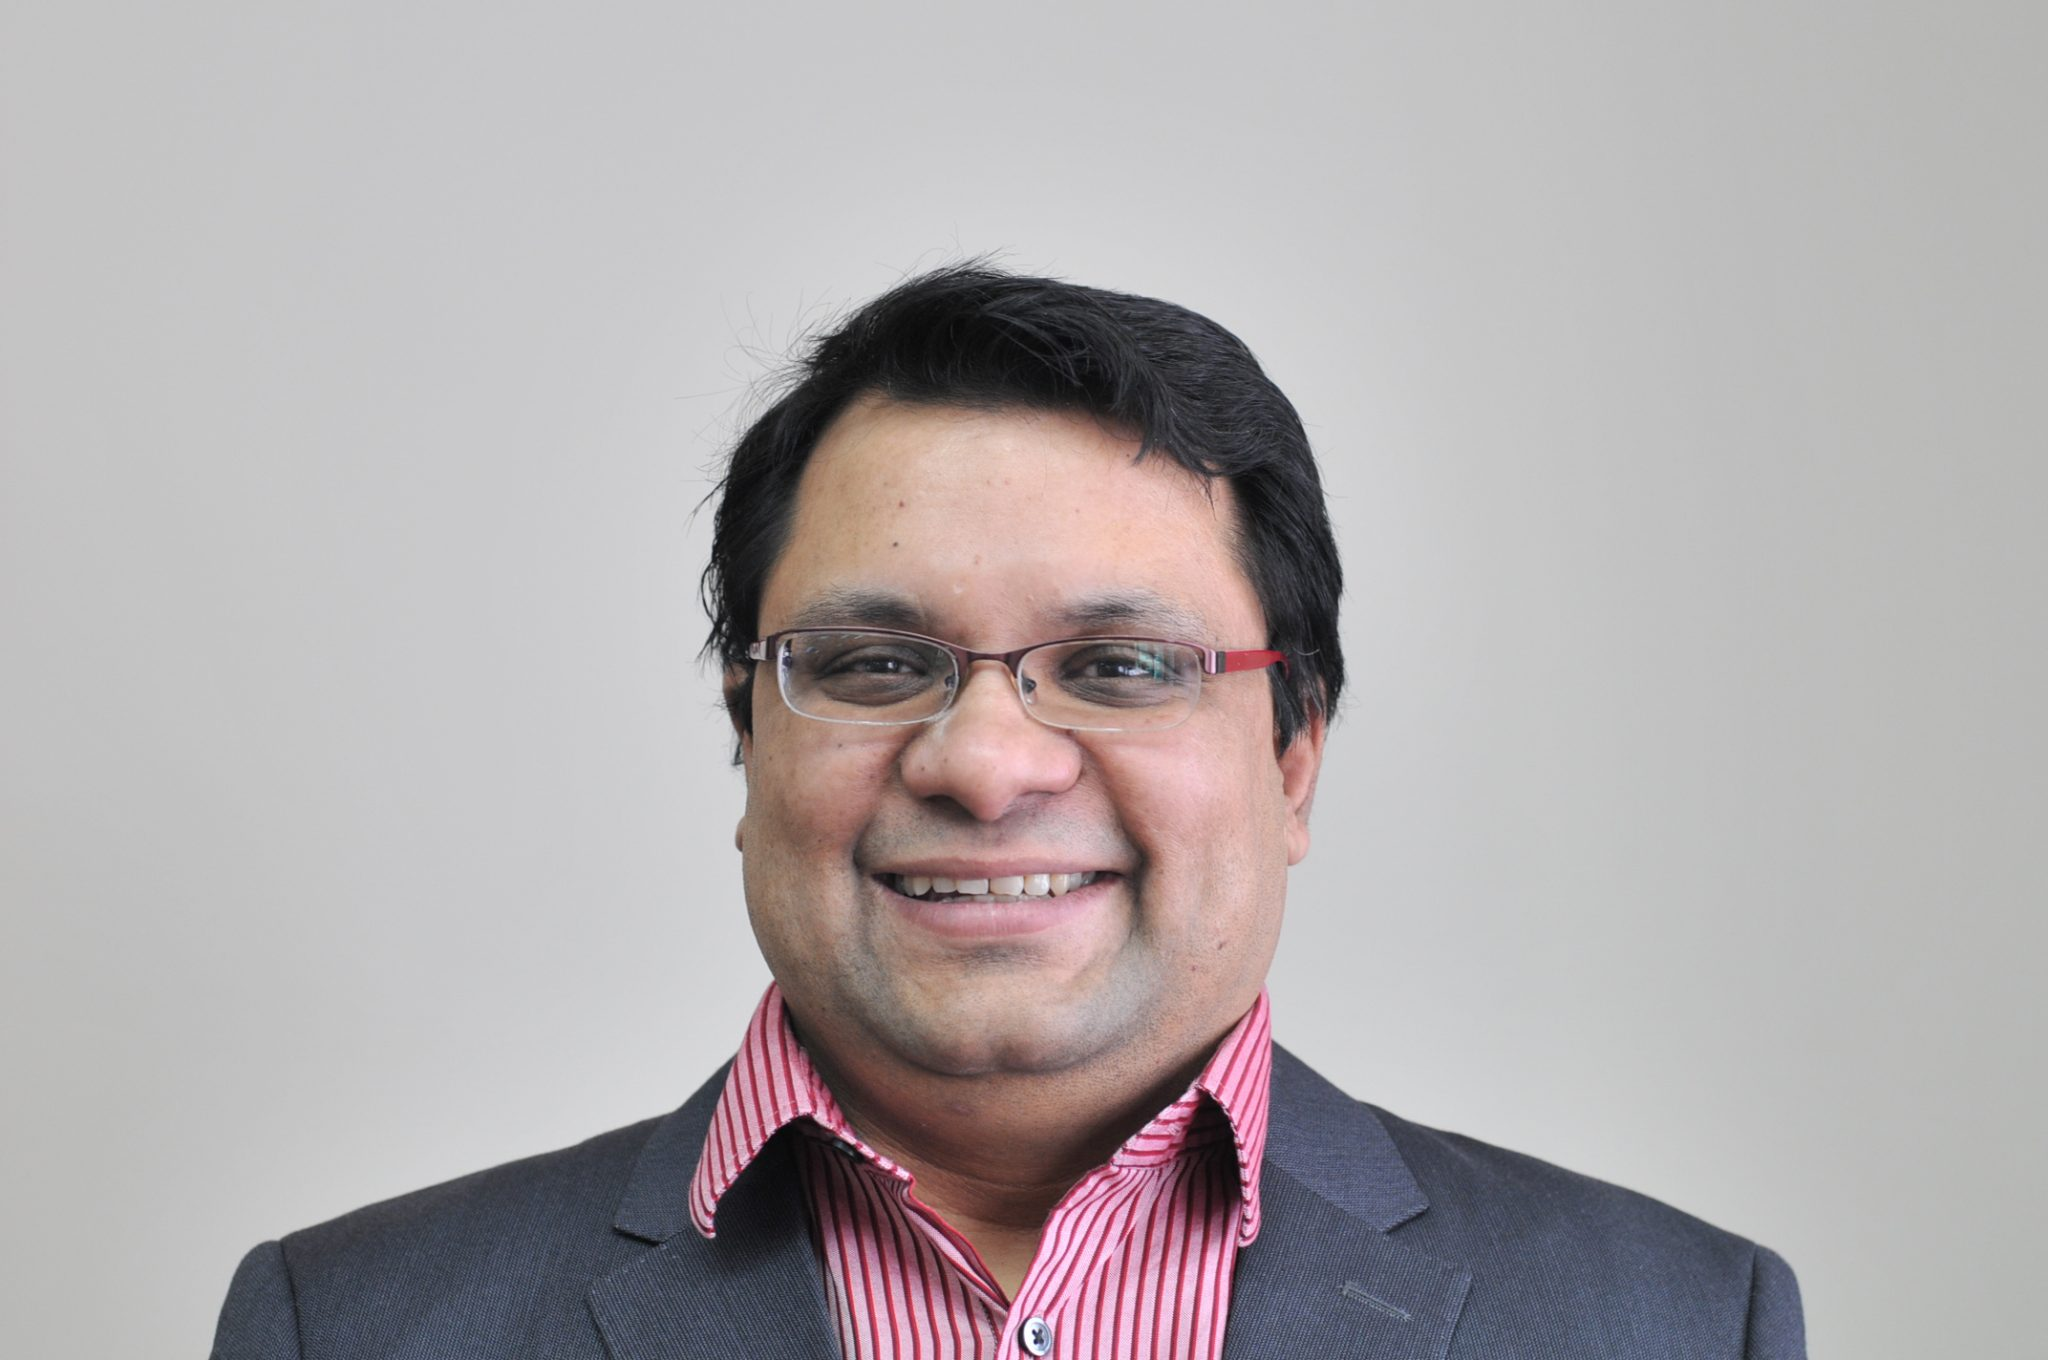 CiF Lab Solutions Announces Niel Mukherjee as Human Resources Manager